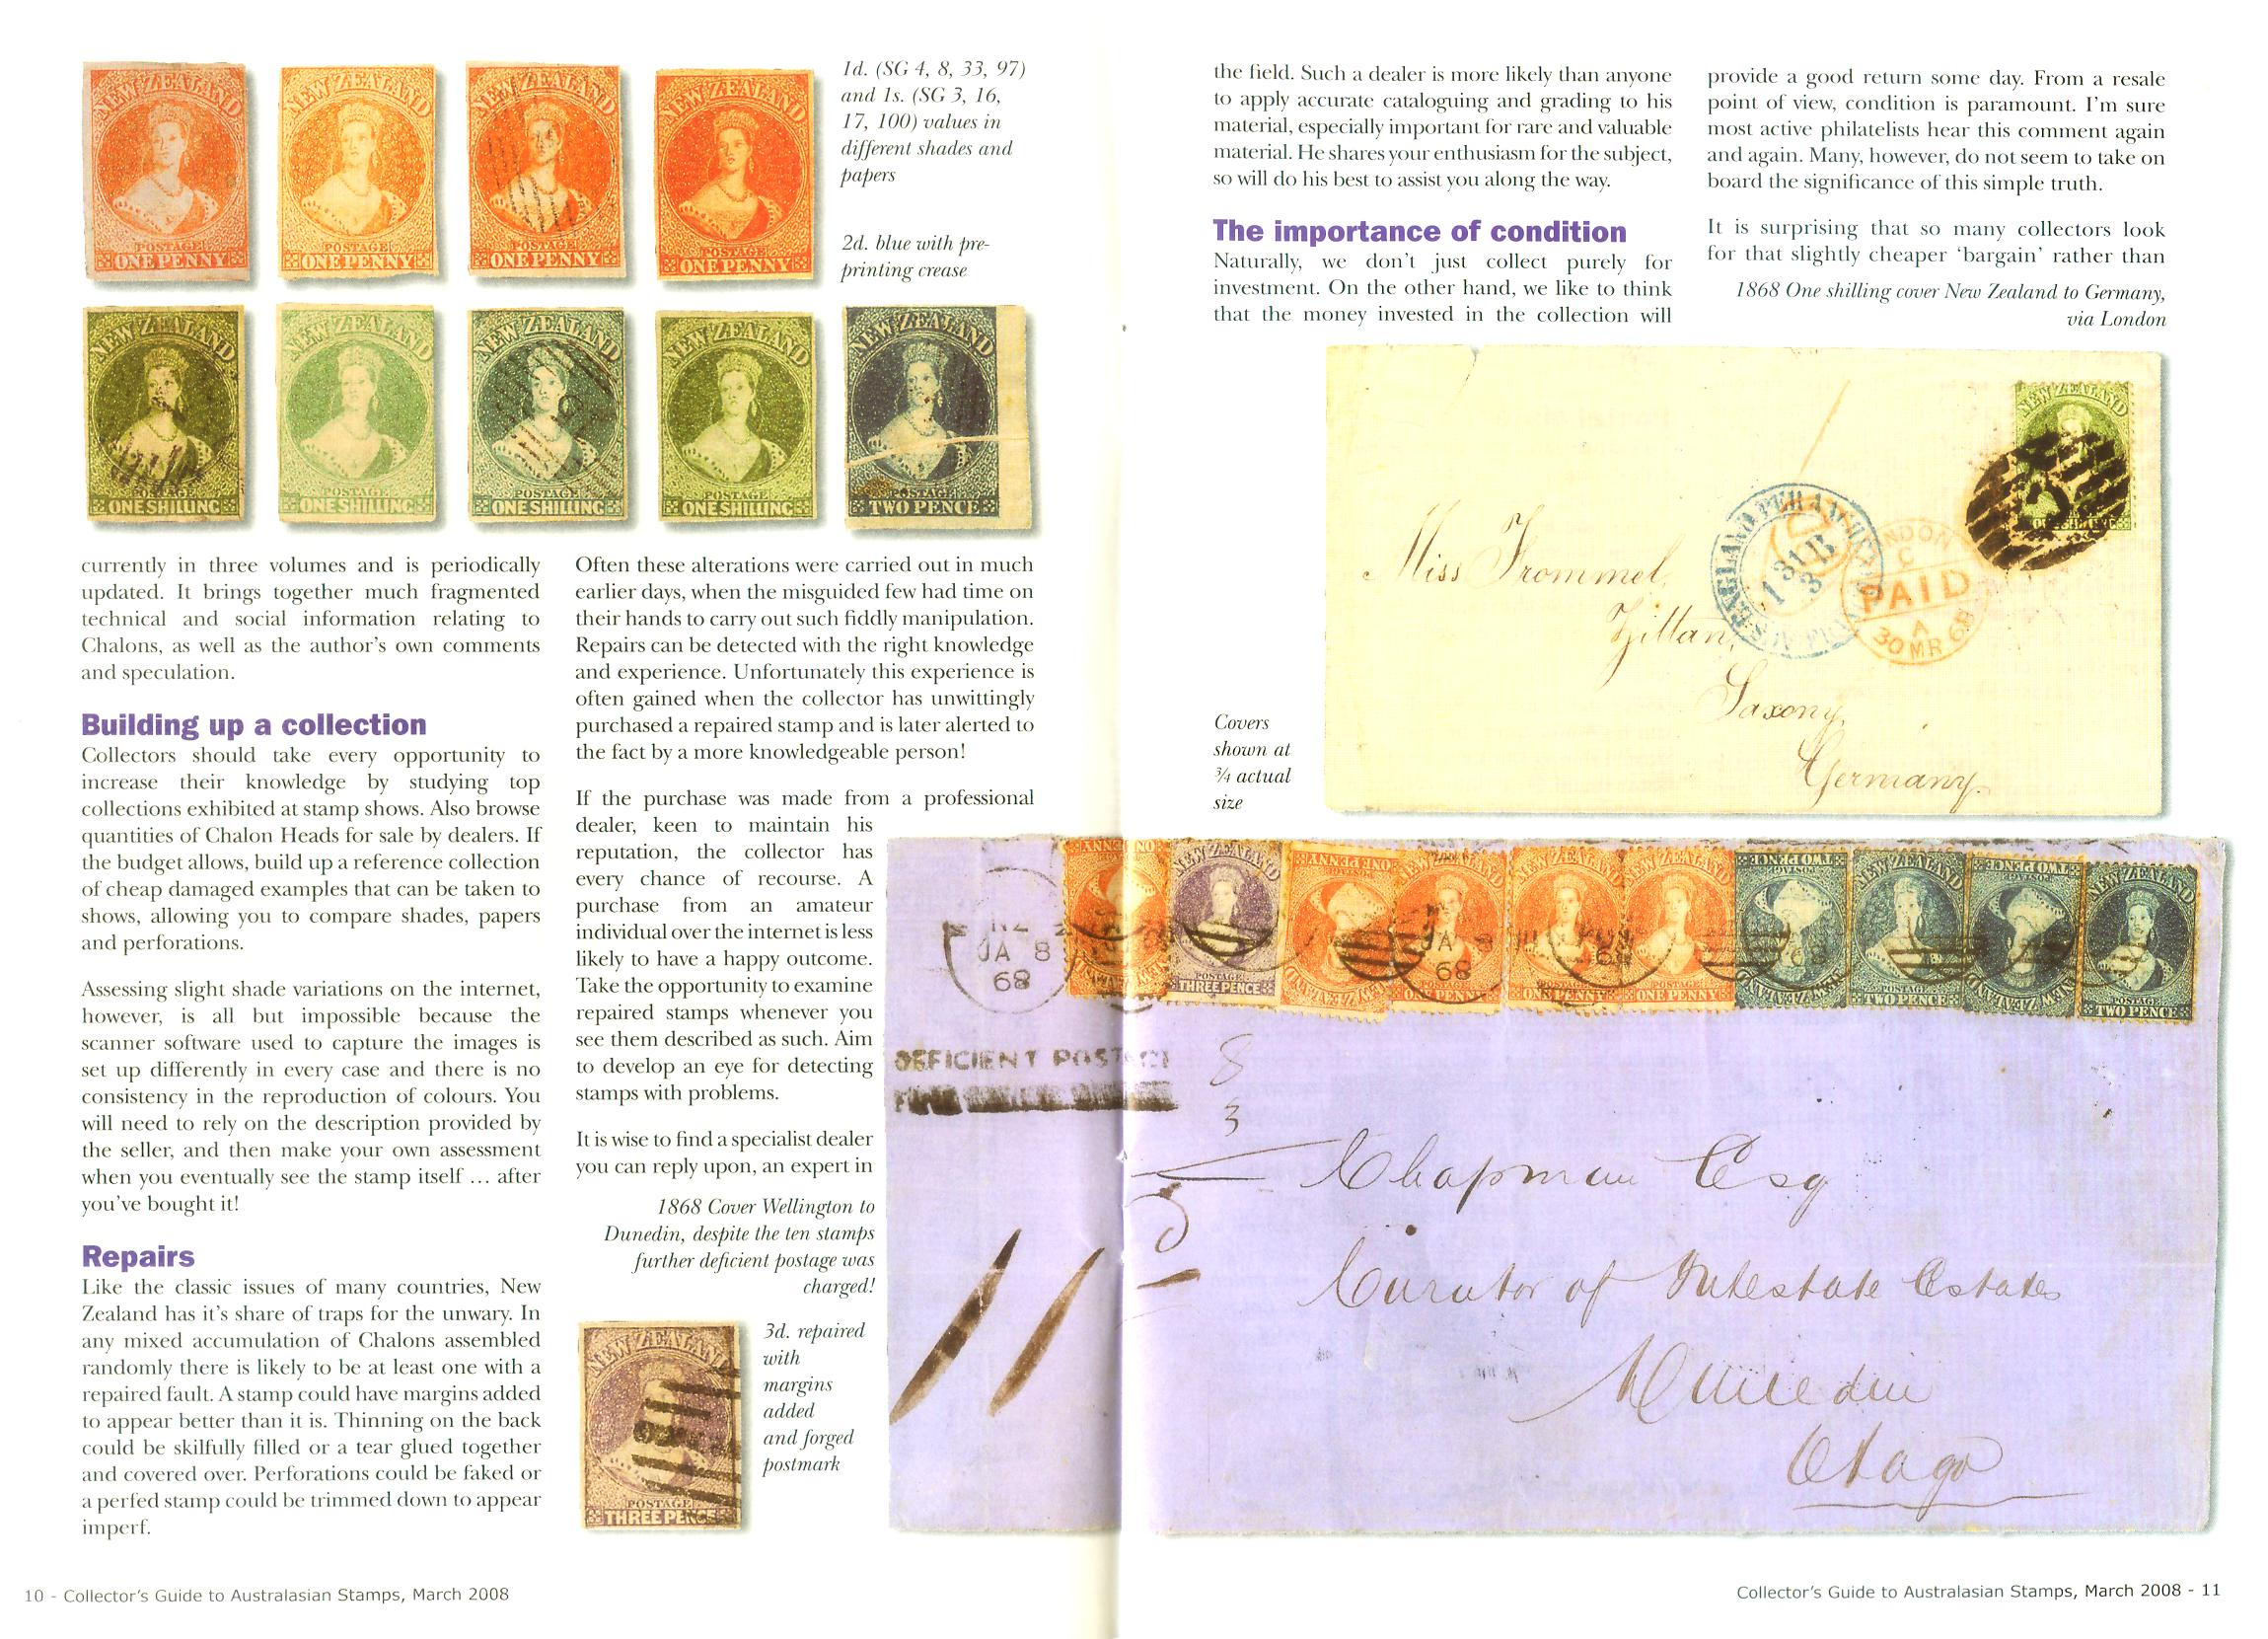 New Zealand Chalons pages 5-6